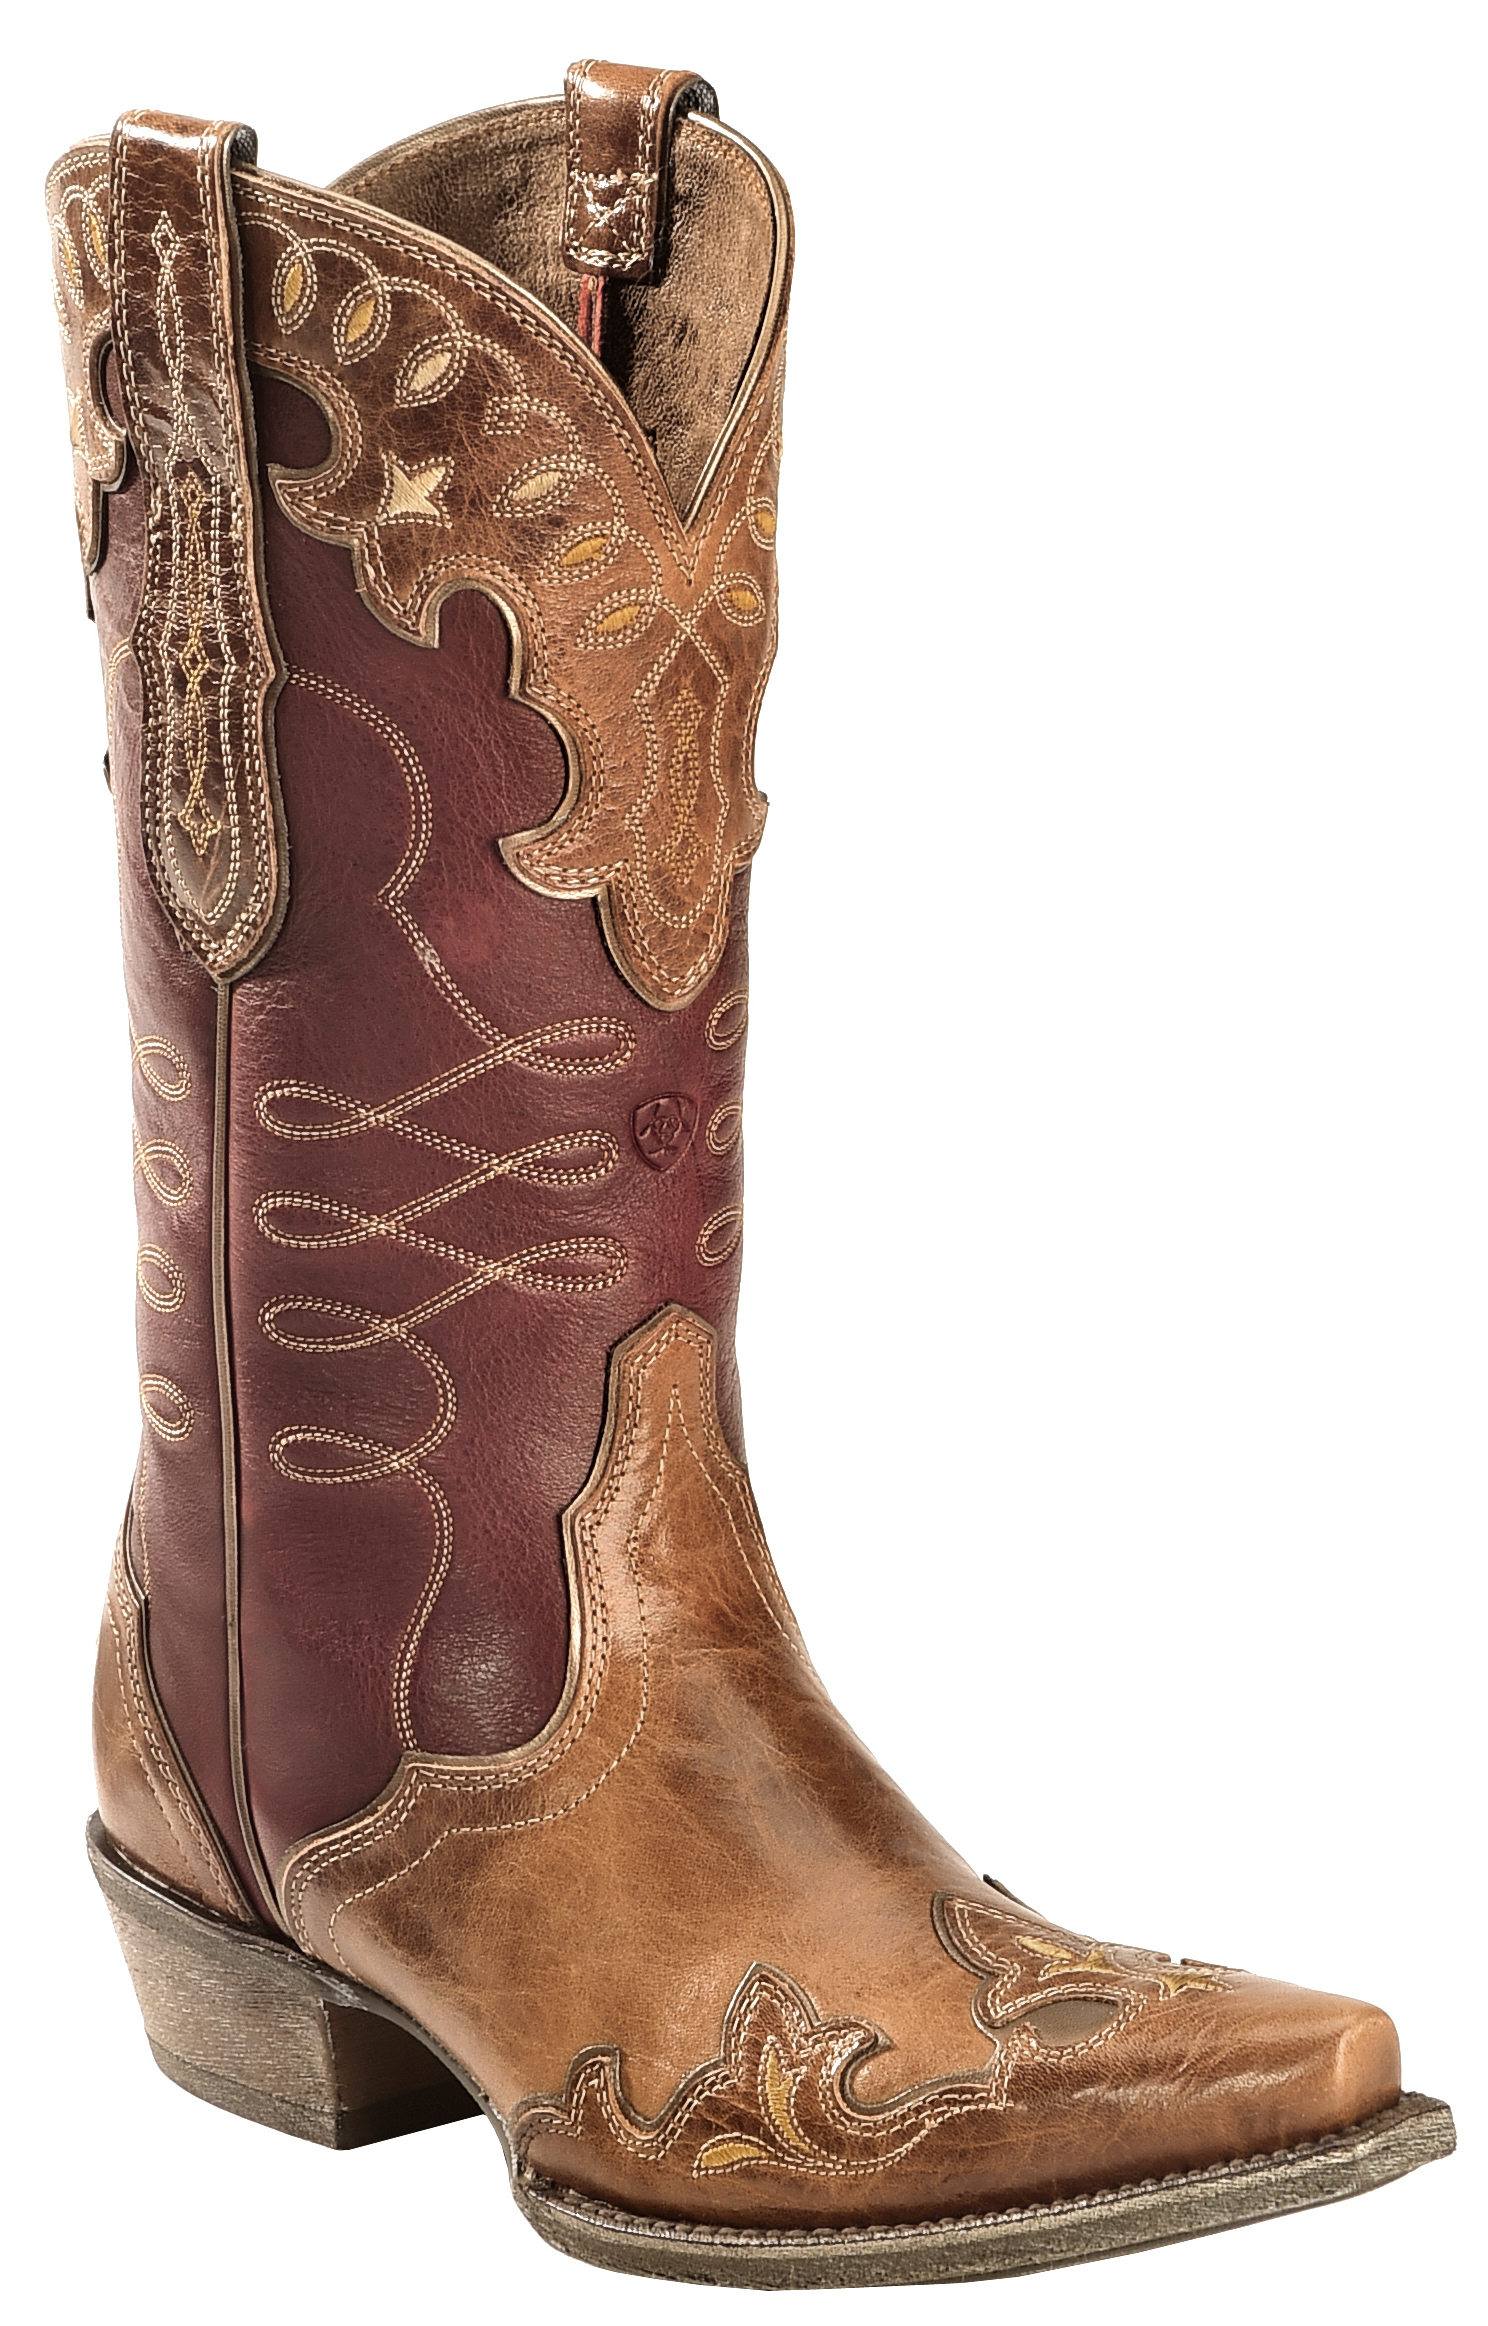 Ariat Brown Zealous Cowgirl Boots Snip Toe Country